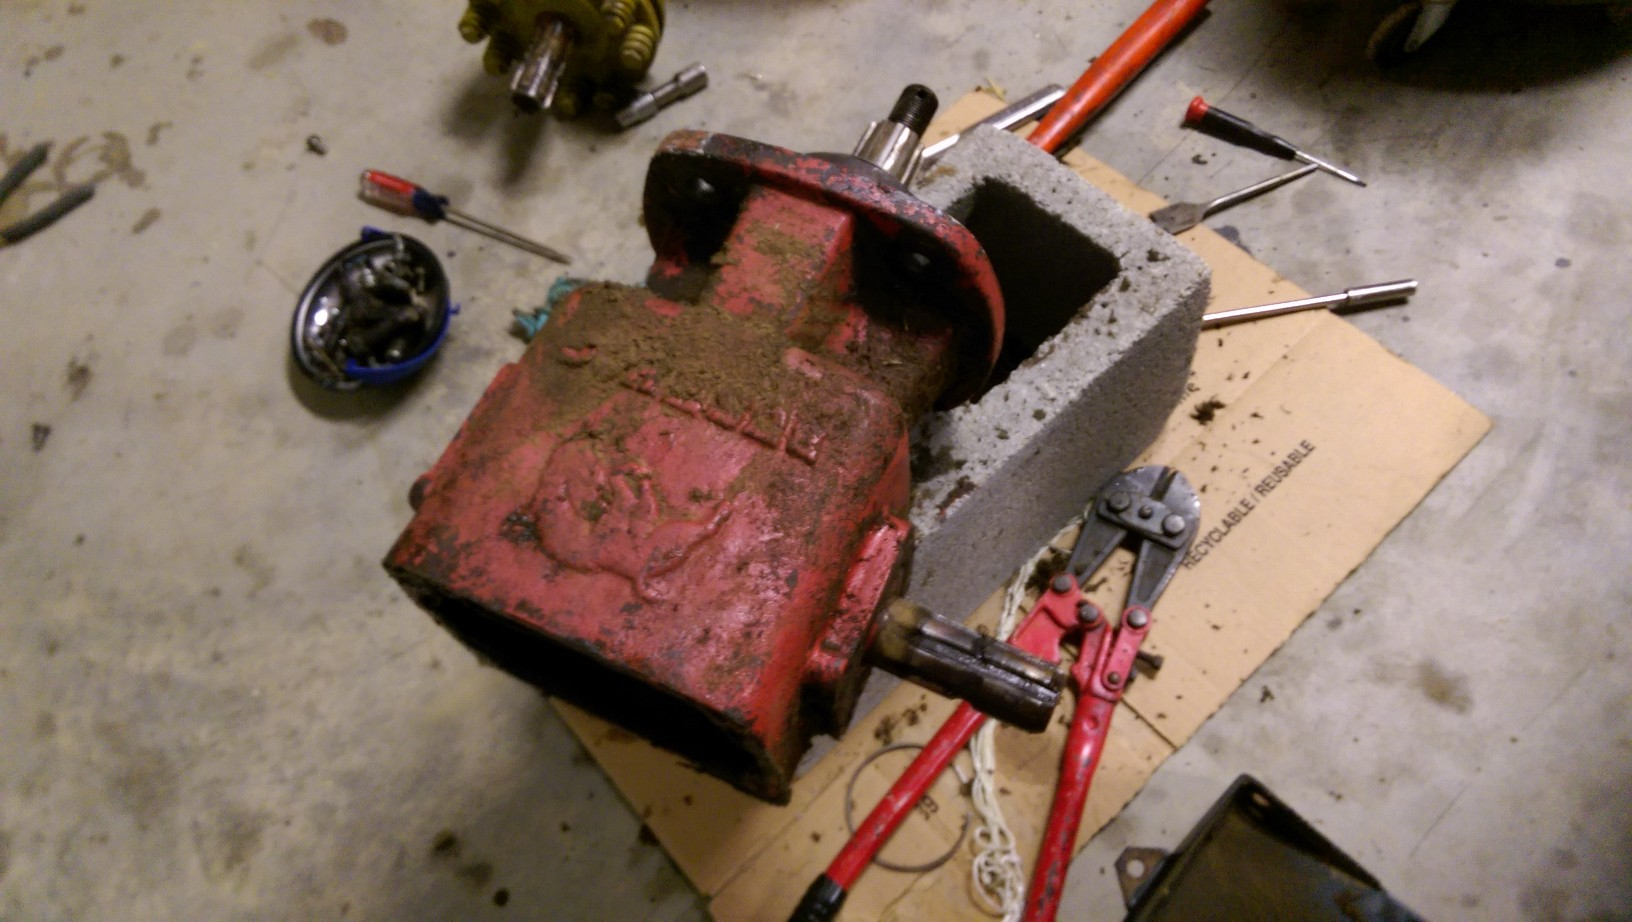 I am trying to take apart a 71282 Gearbox for a Bush Hog